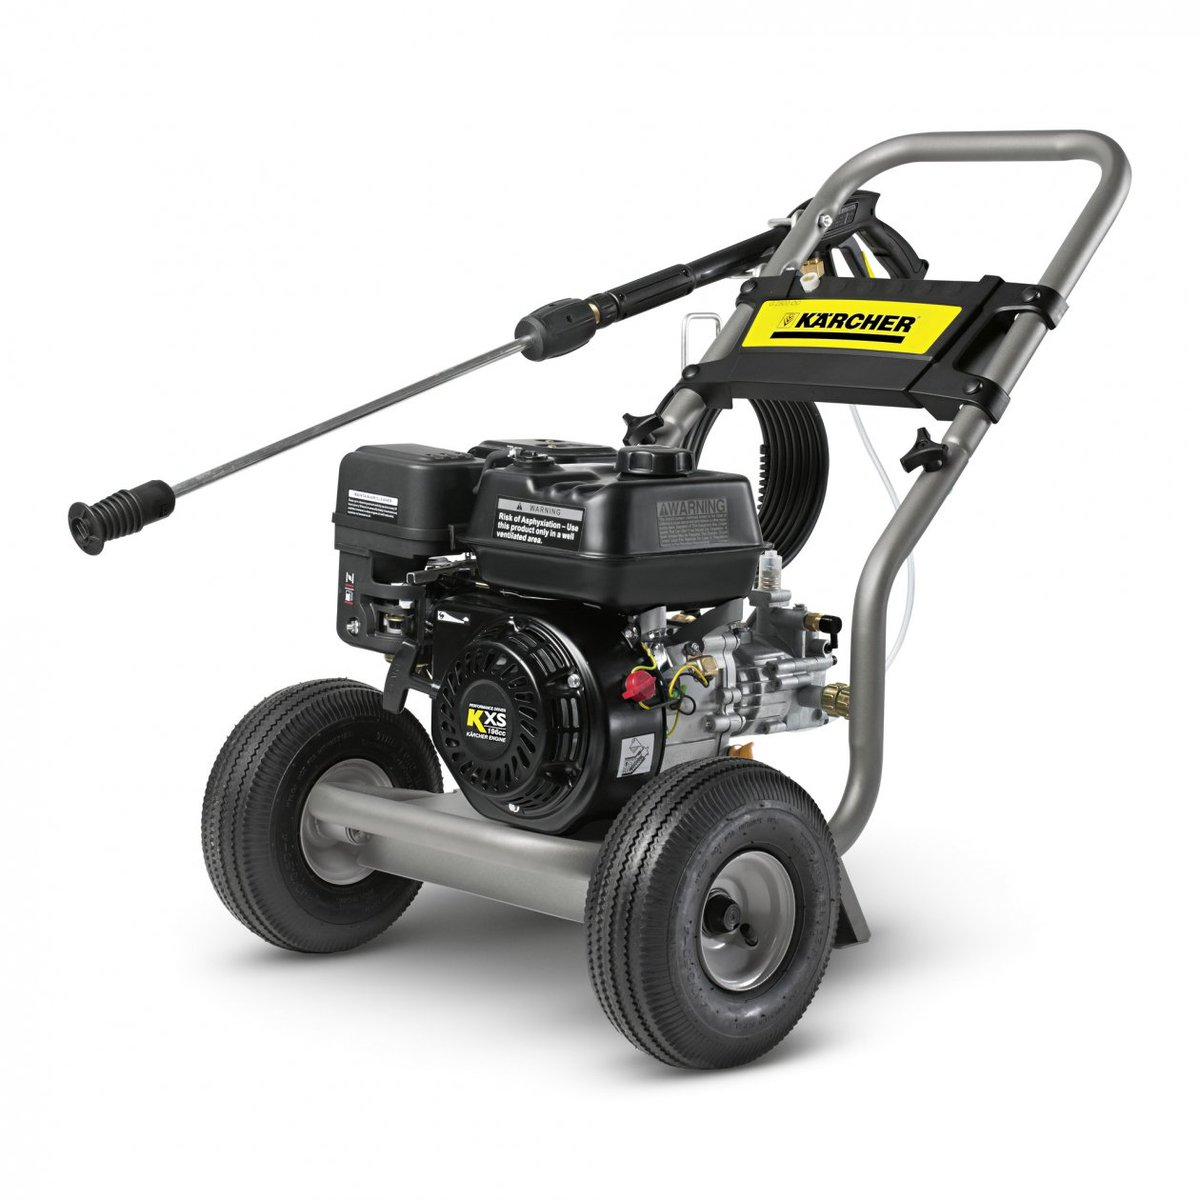 Learn how to assemble this Karcher gas pressure washer!   https://www. youtube.com/watch?v=iCsdvv G5-9Y &nbsp; …   #homerepair #homeimprovement <br>http://pic.twitter.com/ec6W5jgoxb